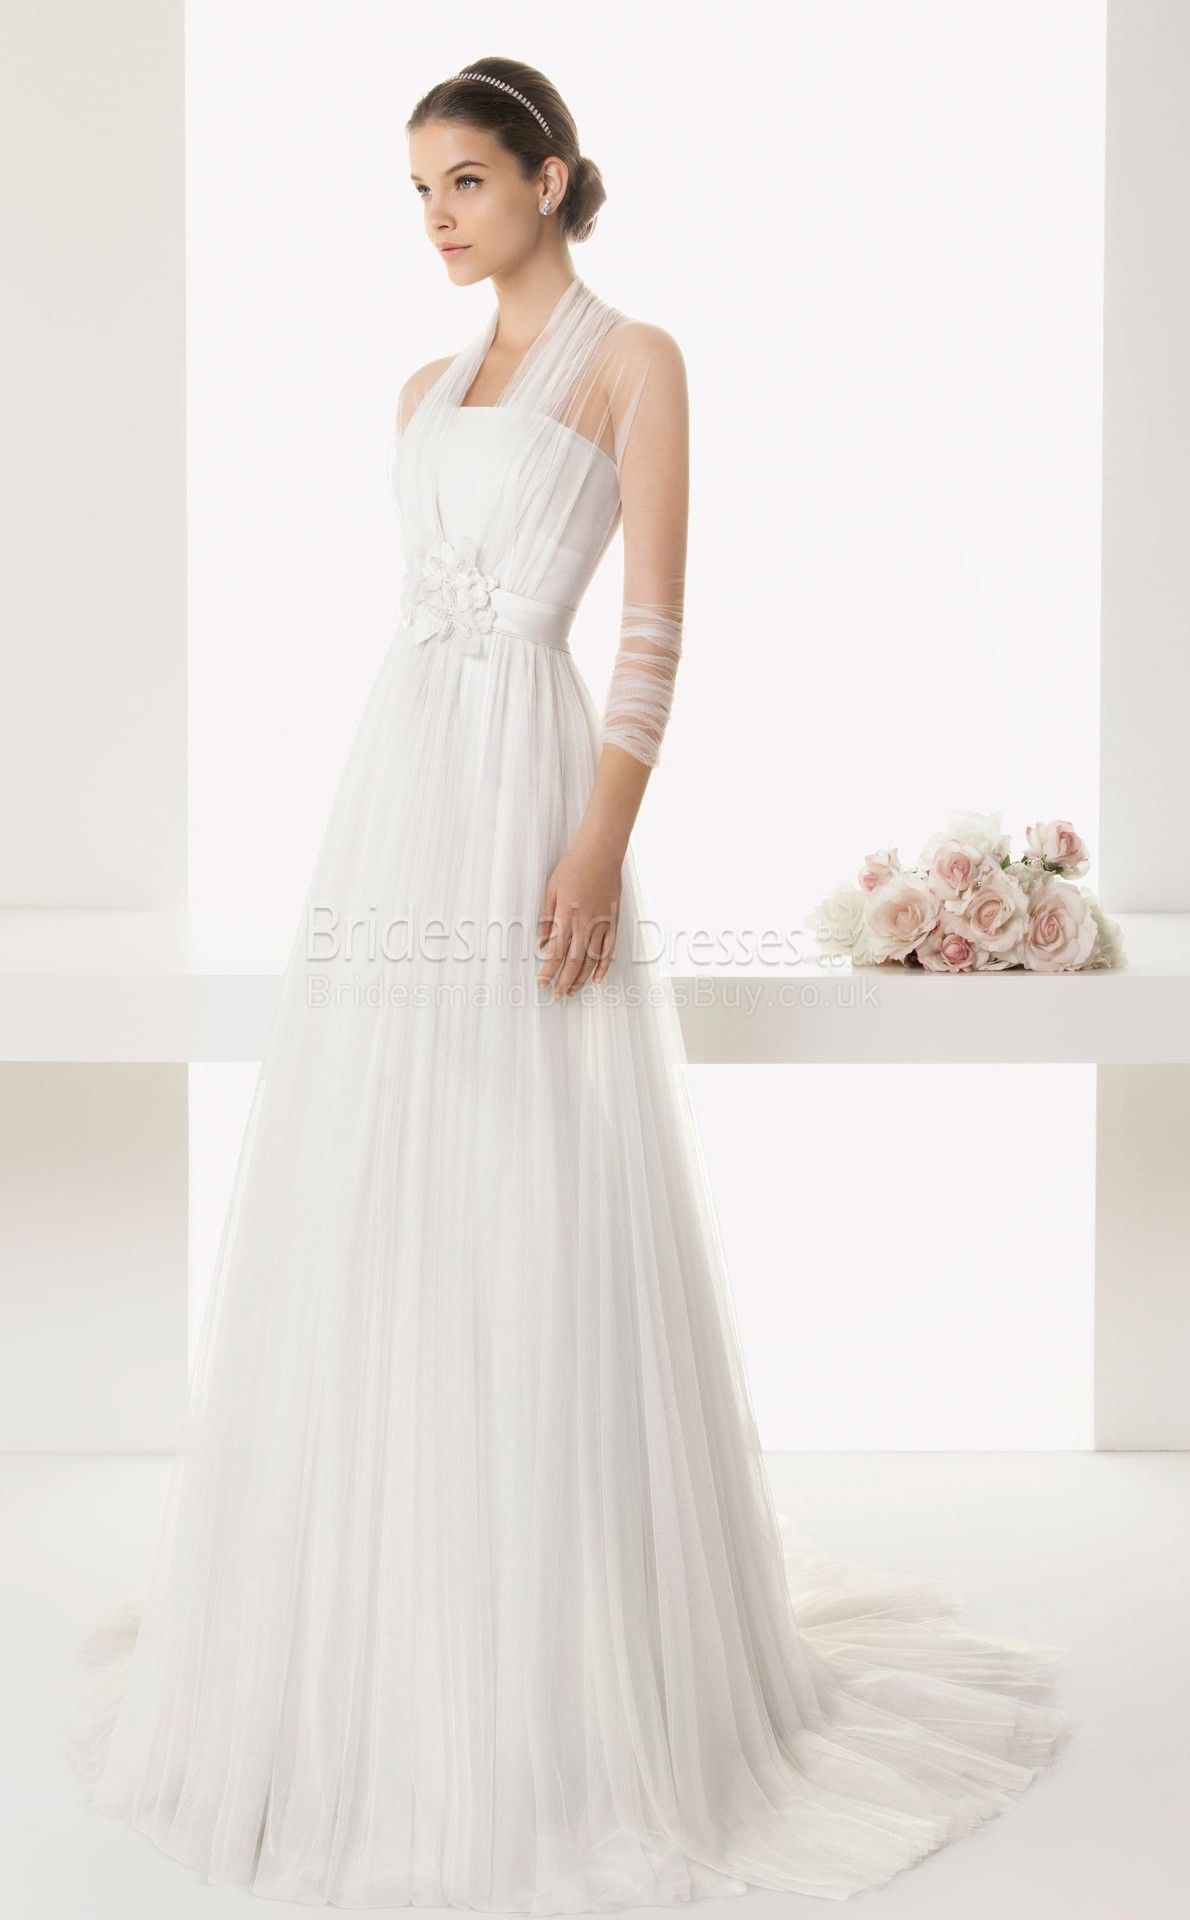 Beach wedding dressessimple wedding dresses wedding dresses